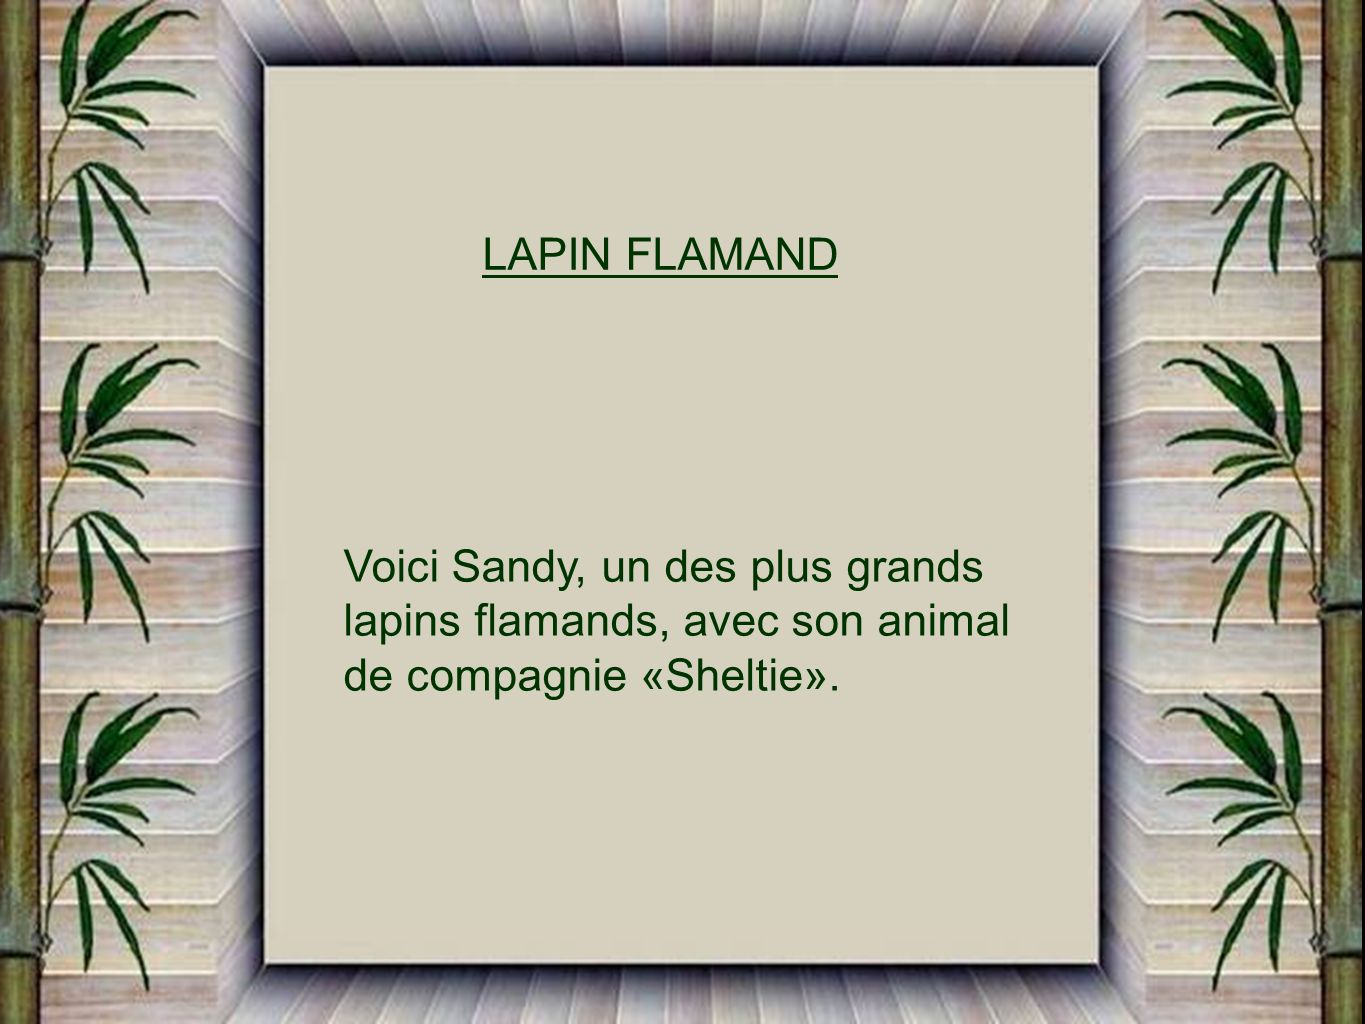 LAPIN FLAMAND Voici Sandy, un des plus grands. lapins flamands, avec son animal.